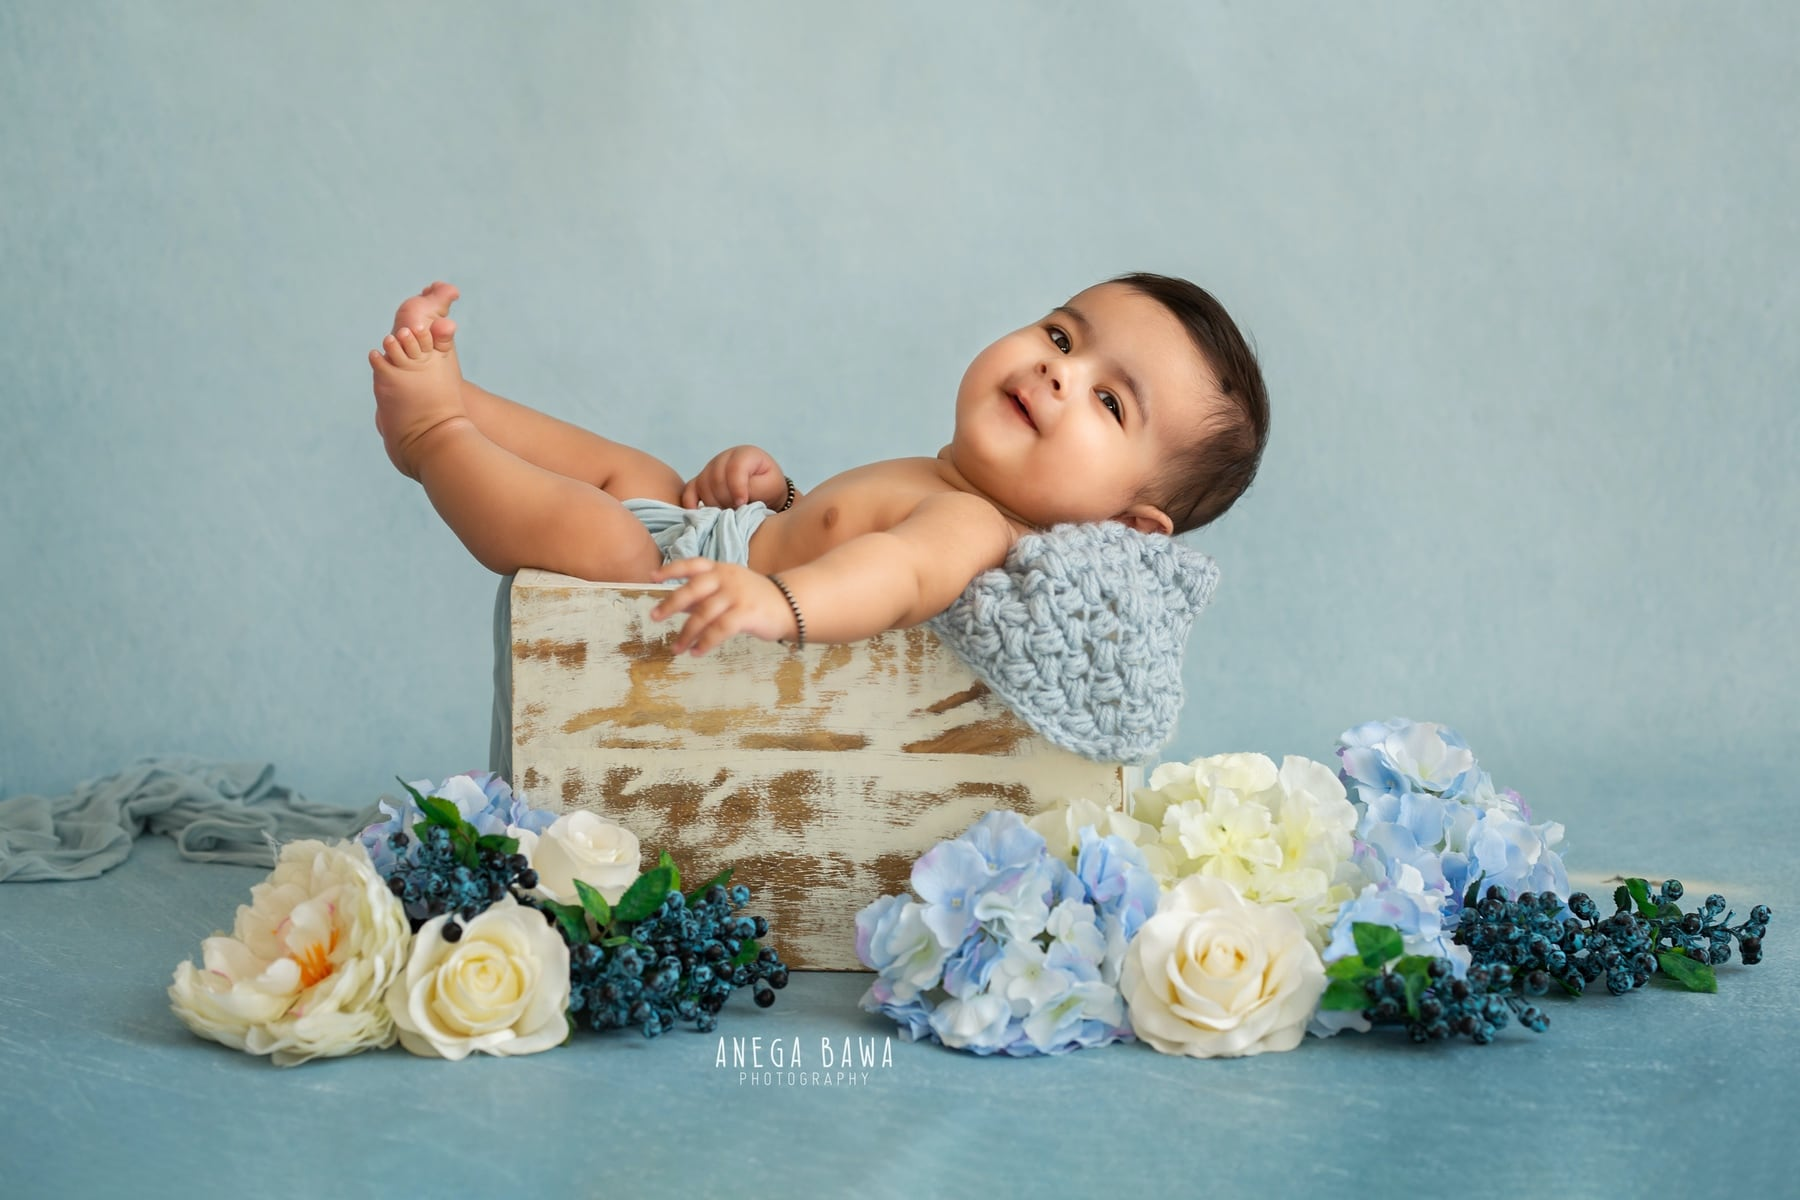 244701-blue-background-white-floral-baby-photography-delhi-5-6-7-months-baby-photoshoot-gurgaon-anega-bawa